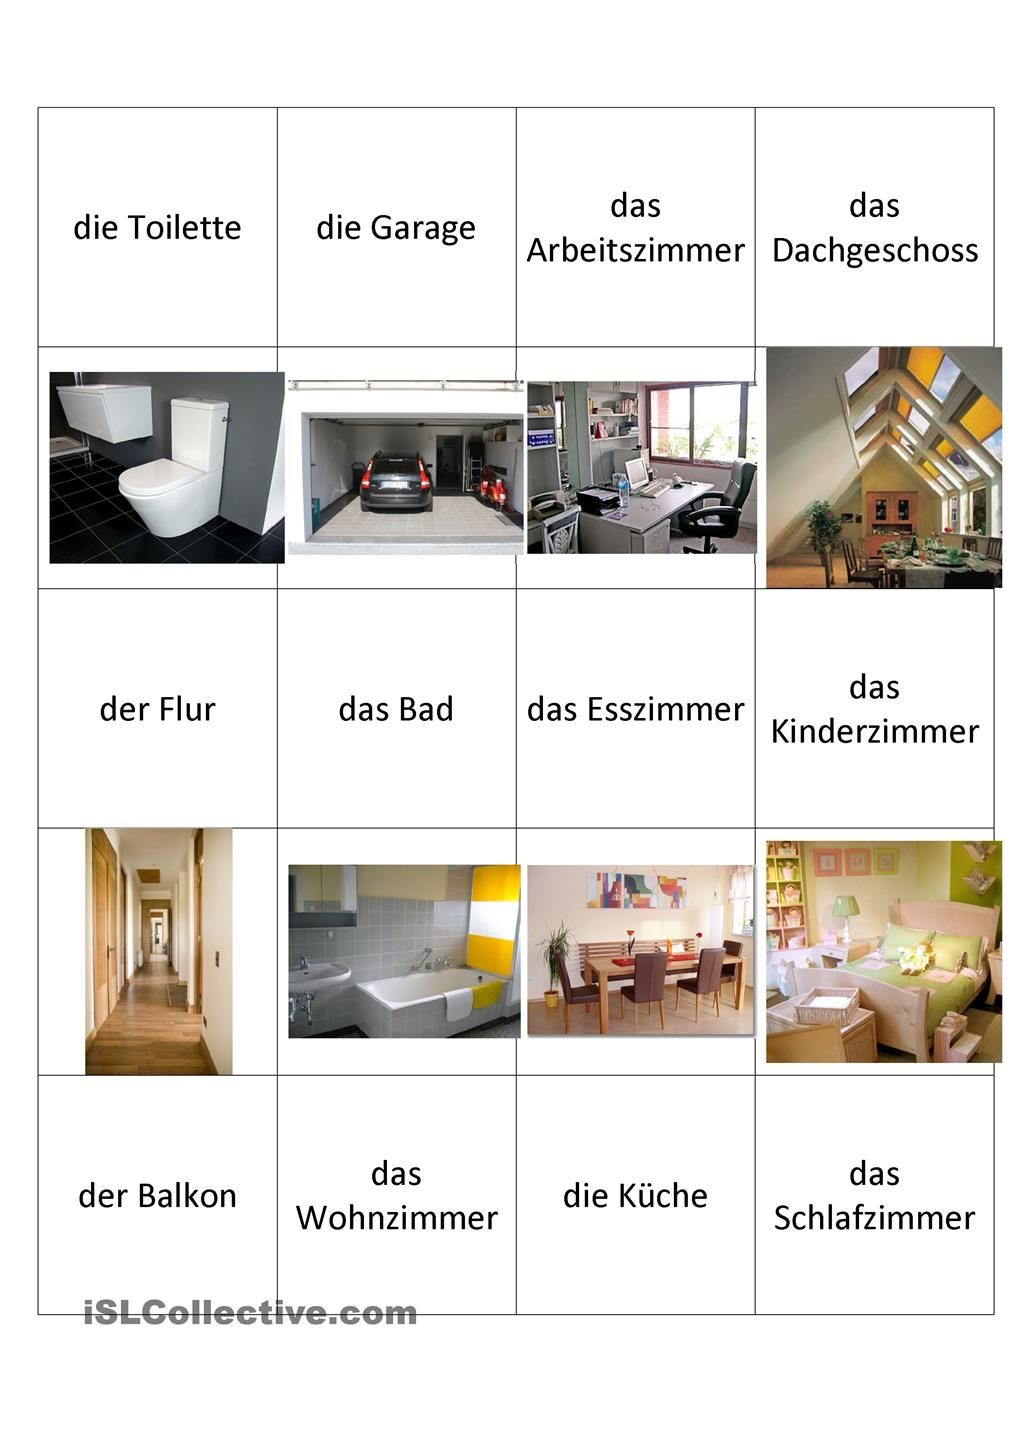 wortschatz zum thema wohnung learning german pinterest wortschatz deutsch und deutsch. Black Bedroom Furniture Sets. Home Design Ideas